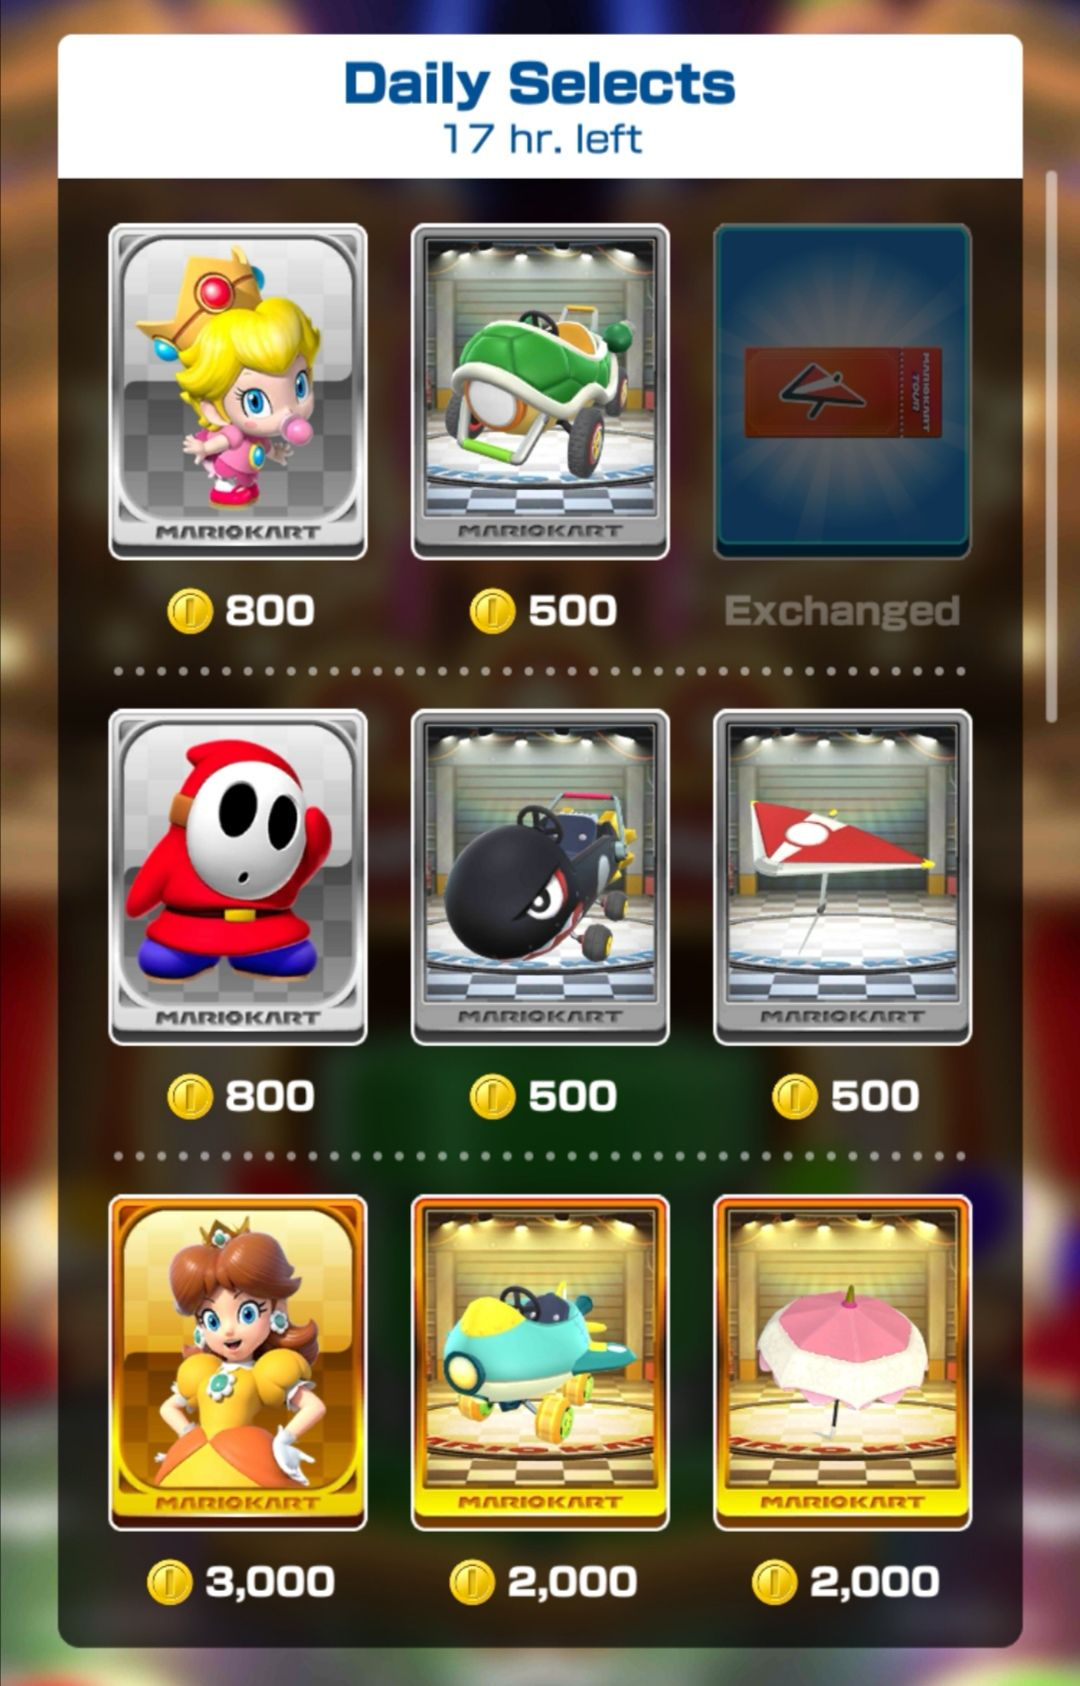 Mario Kart Tour Hack Tool Unlimited Free Coins Generator Android Ios Mario Kart Tour Hack And Cheats Mario Kart Tour Hack 2 Games Game Update Mario Kart